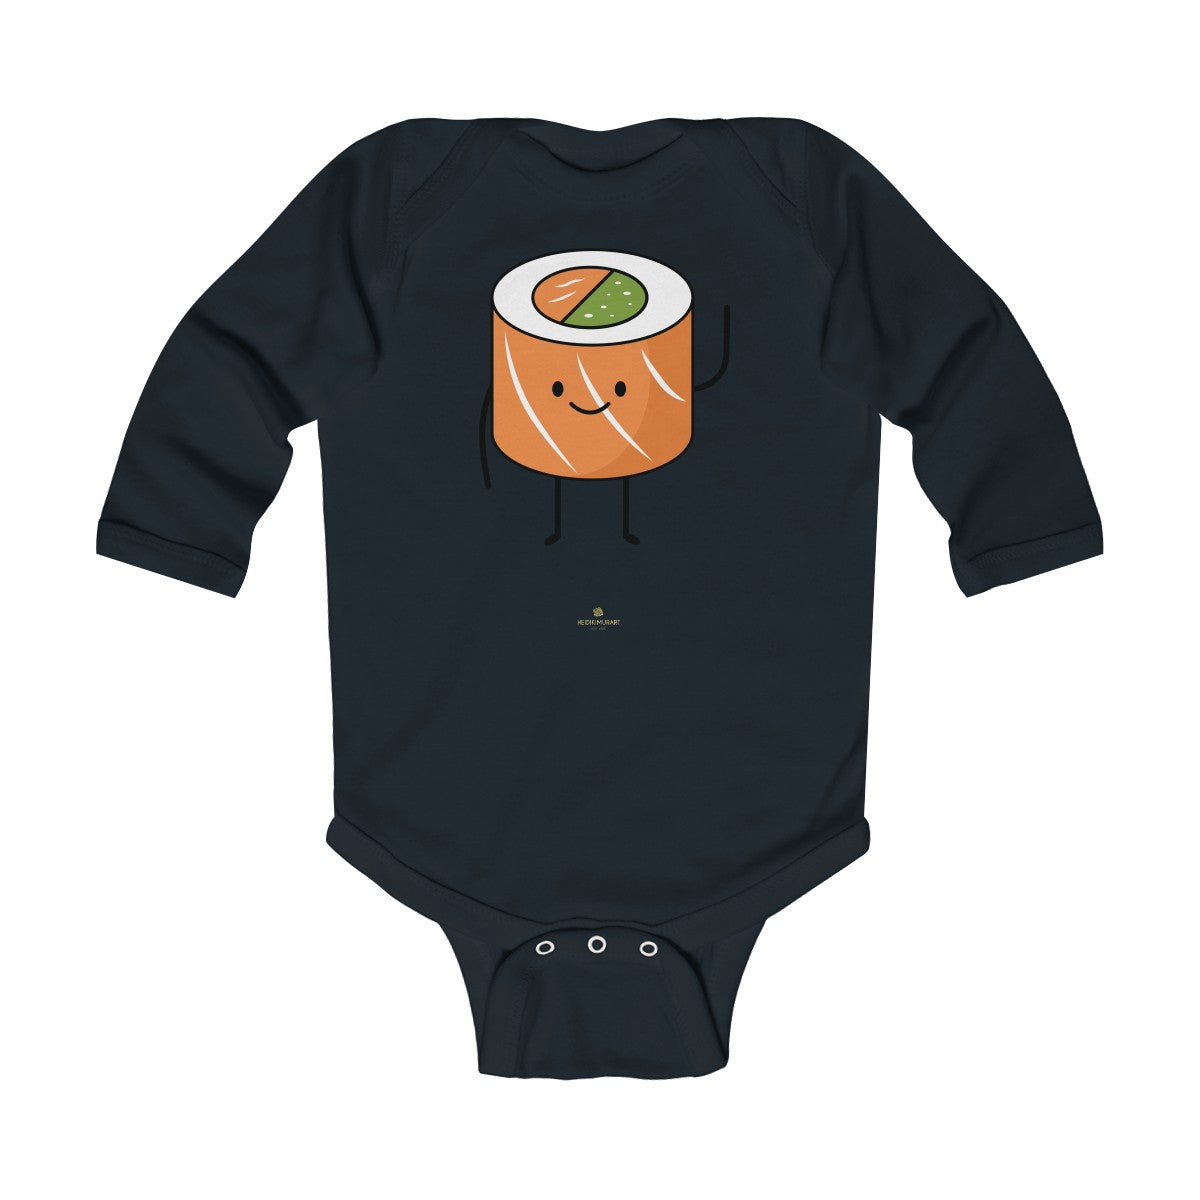 Salmon Sushi Lover Baby Boy or Girls Infant Kids Long Sleeve Bodysuit - Made in USA-Infant Long Sleeve Bodysuit-Black-18M-Heidi Kimura Art LLC Salmon Sushi Baby Bodysuit, Lover Baby Boy/Girls Infant Long Sleeve Bodysuit-Made in USA